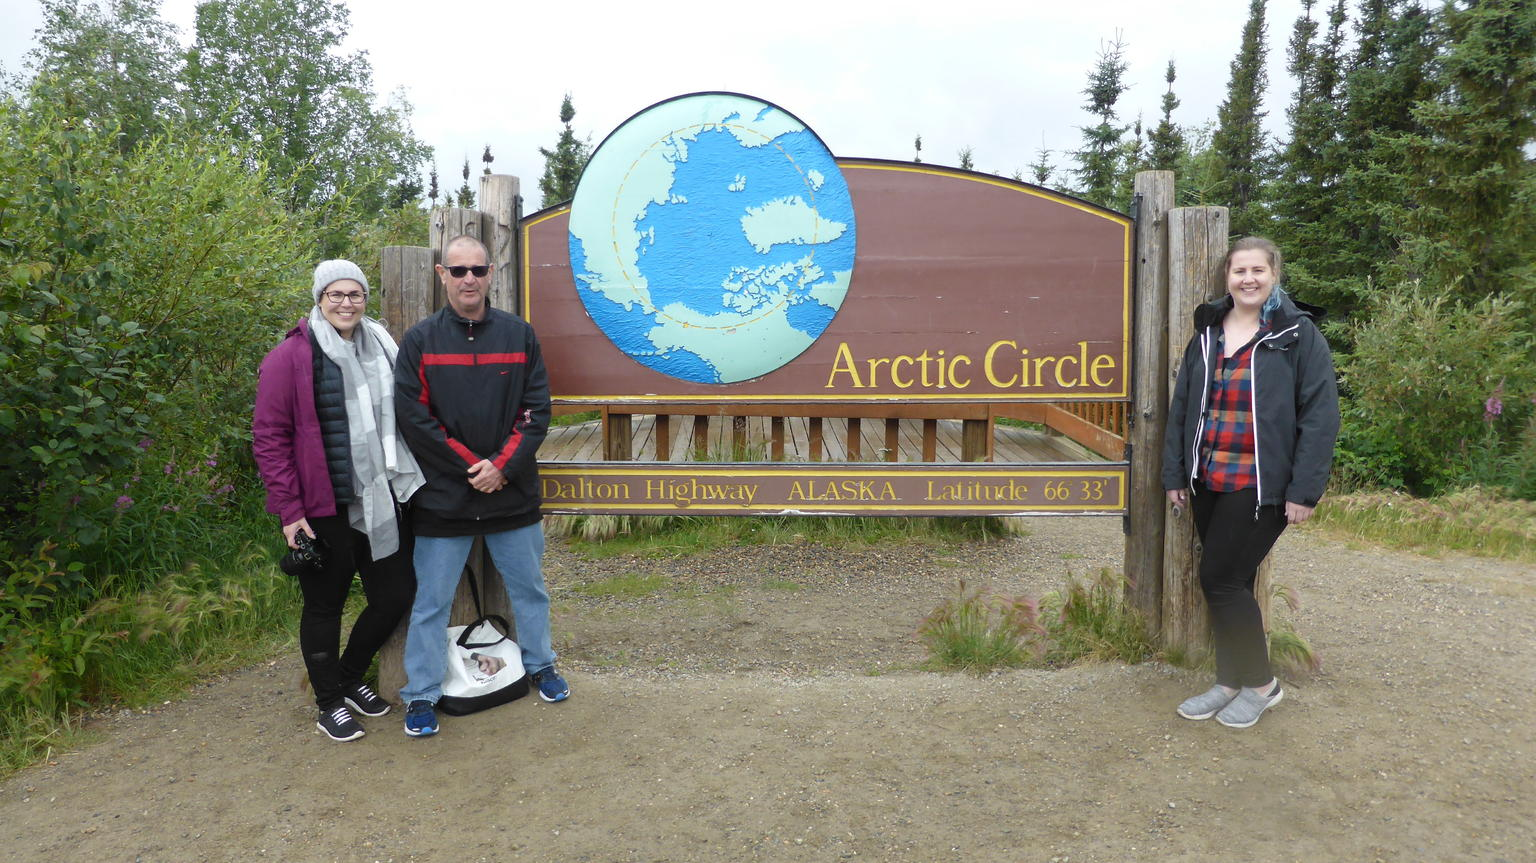 Arctic Circle Day Trip from Fairbanks with Lunch